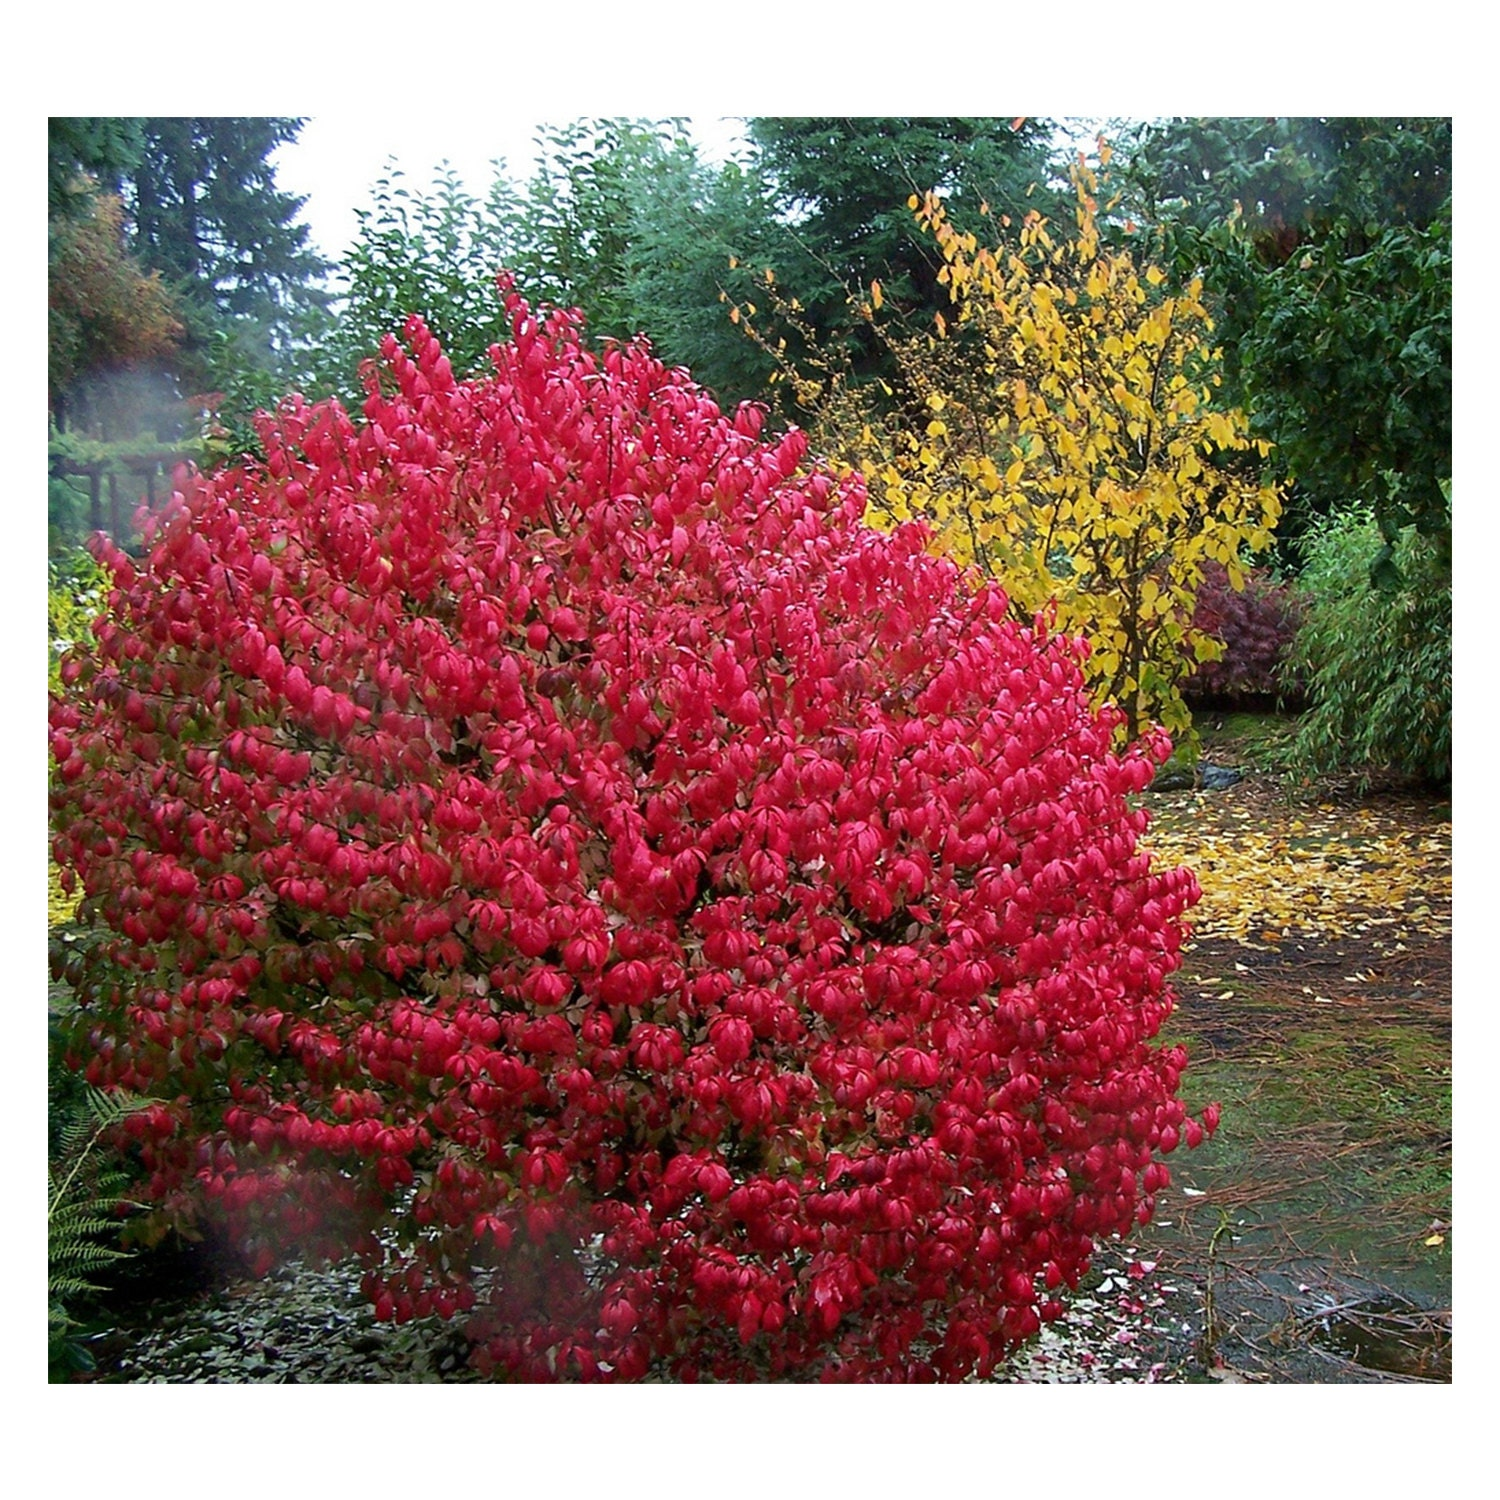 Unique Red Bushes for Landscaping